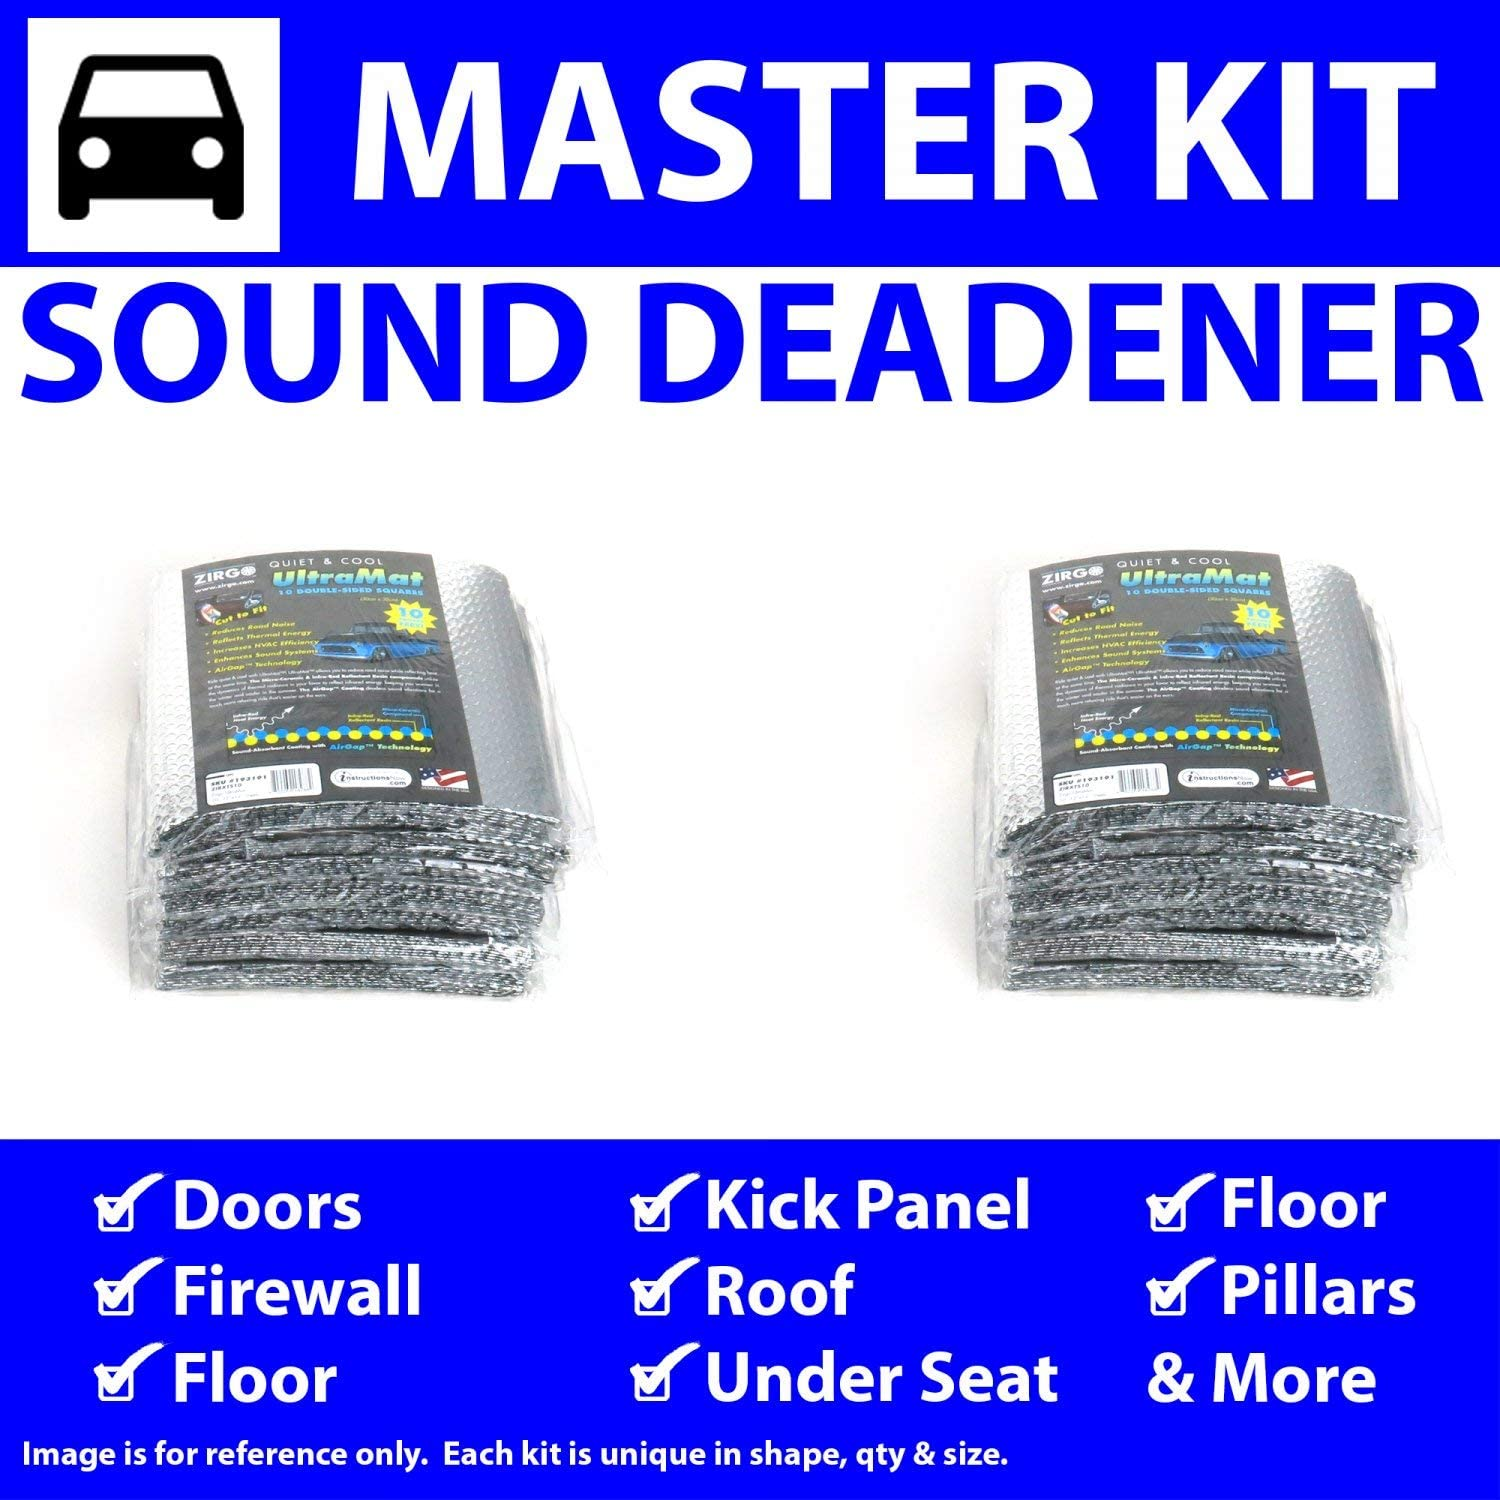 for 81-90 VW ~ Master Kit Zirgo 315107 Heat and Sound Deadener